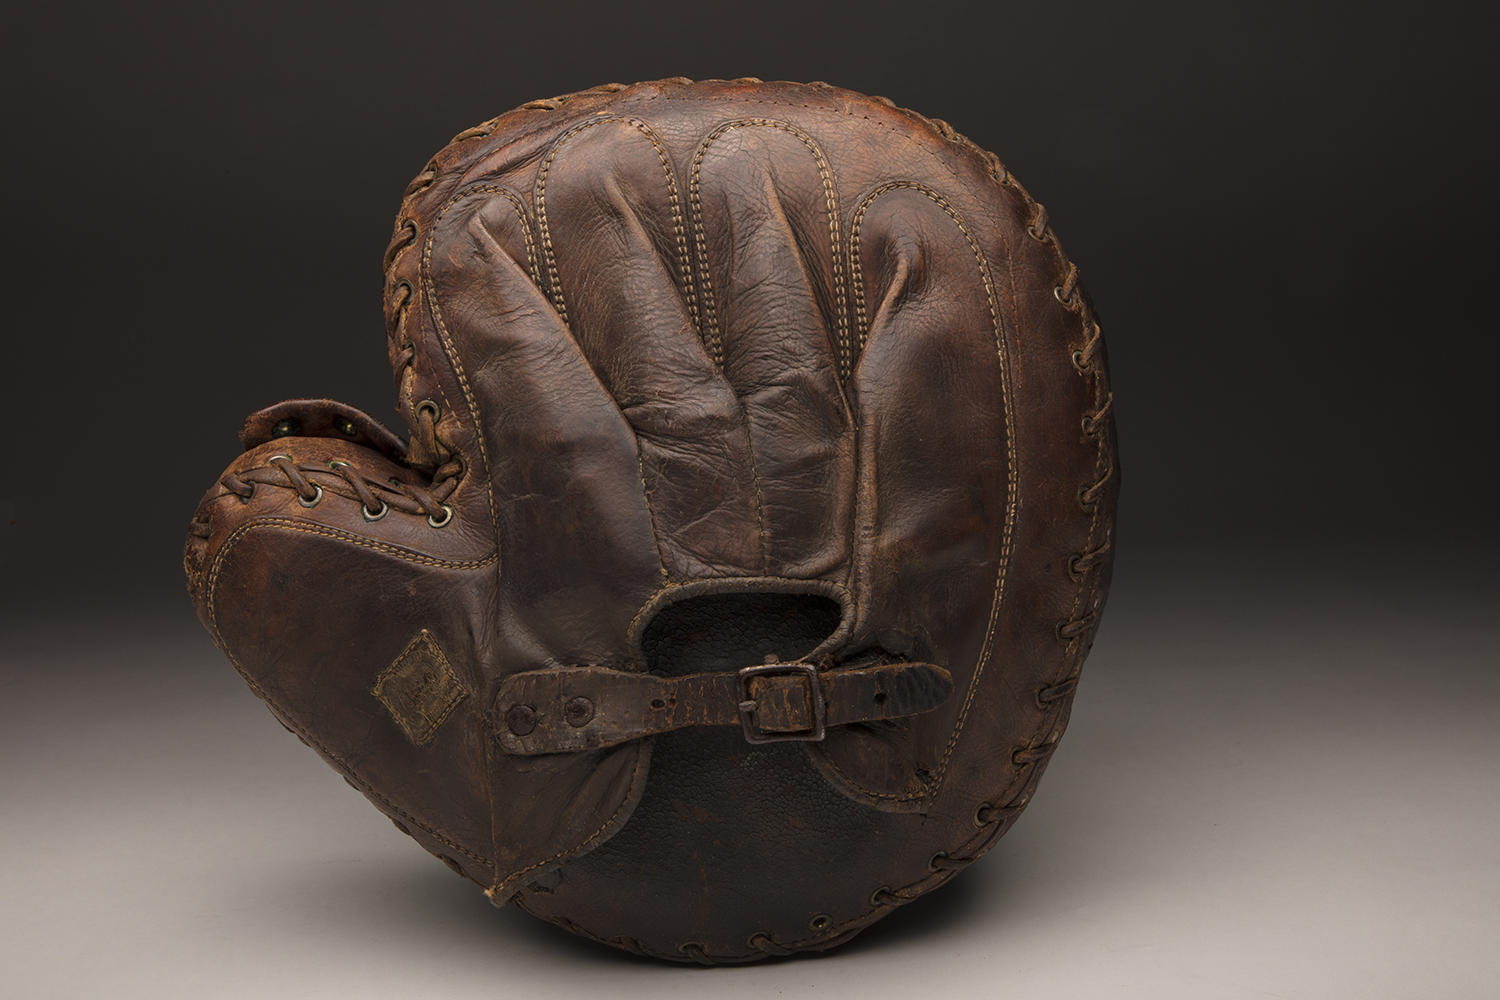 Gilbert Cooling, who played semi-professional baseball in the early 20th century, used this left-handed catcher's mitt during his career on the diamond. His son Charles donated it to the Hall of Fame in 1961. (Milo Stewart Jr. / National Baseball Hall of Fame and Museum)